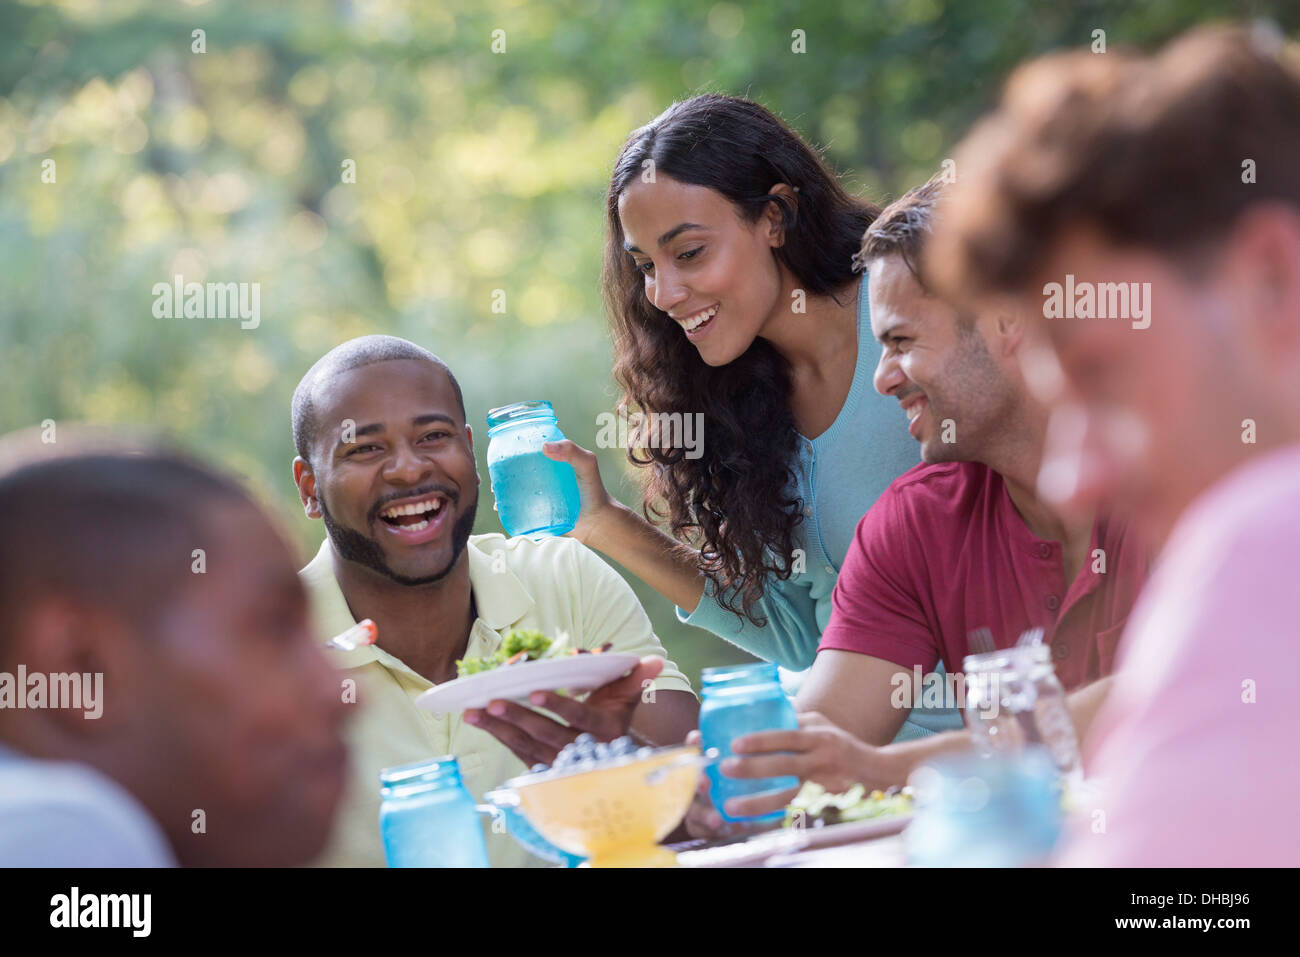 A group of people having a meal outdoors, a picnic. Men and women. - Stock Image